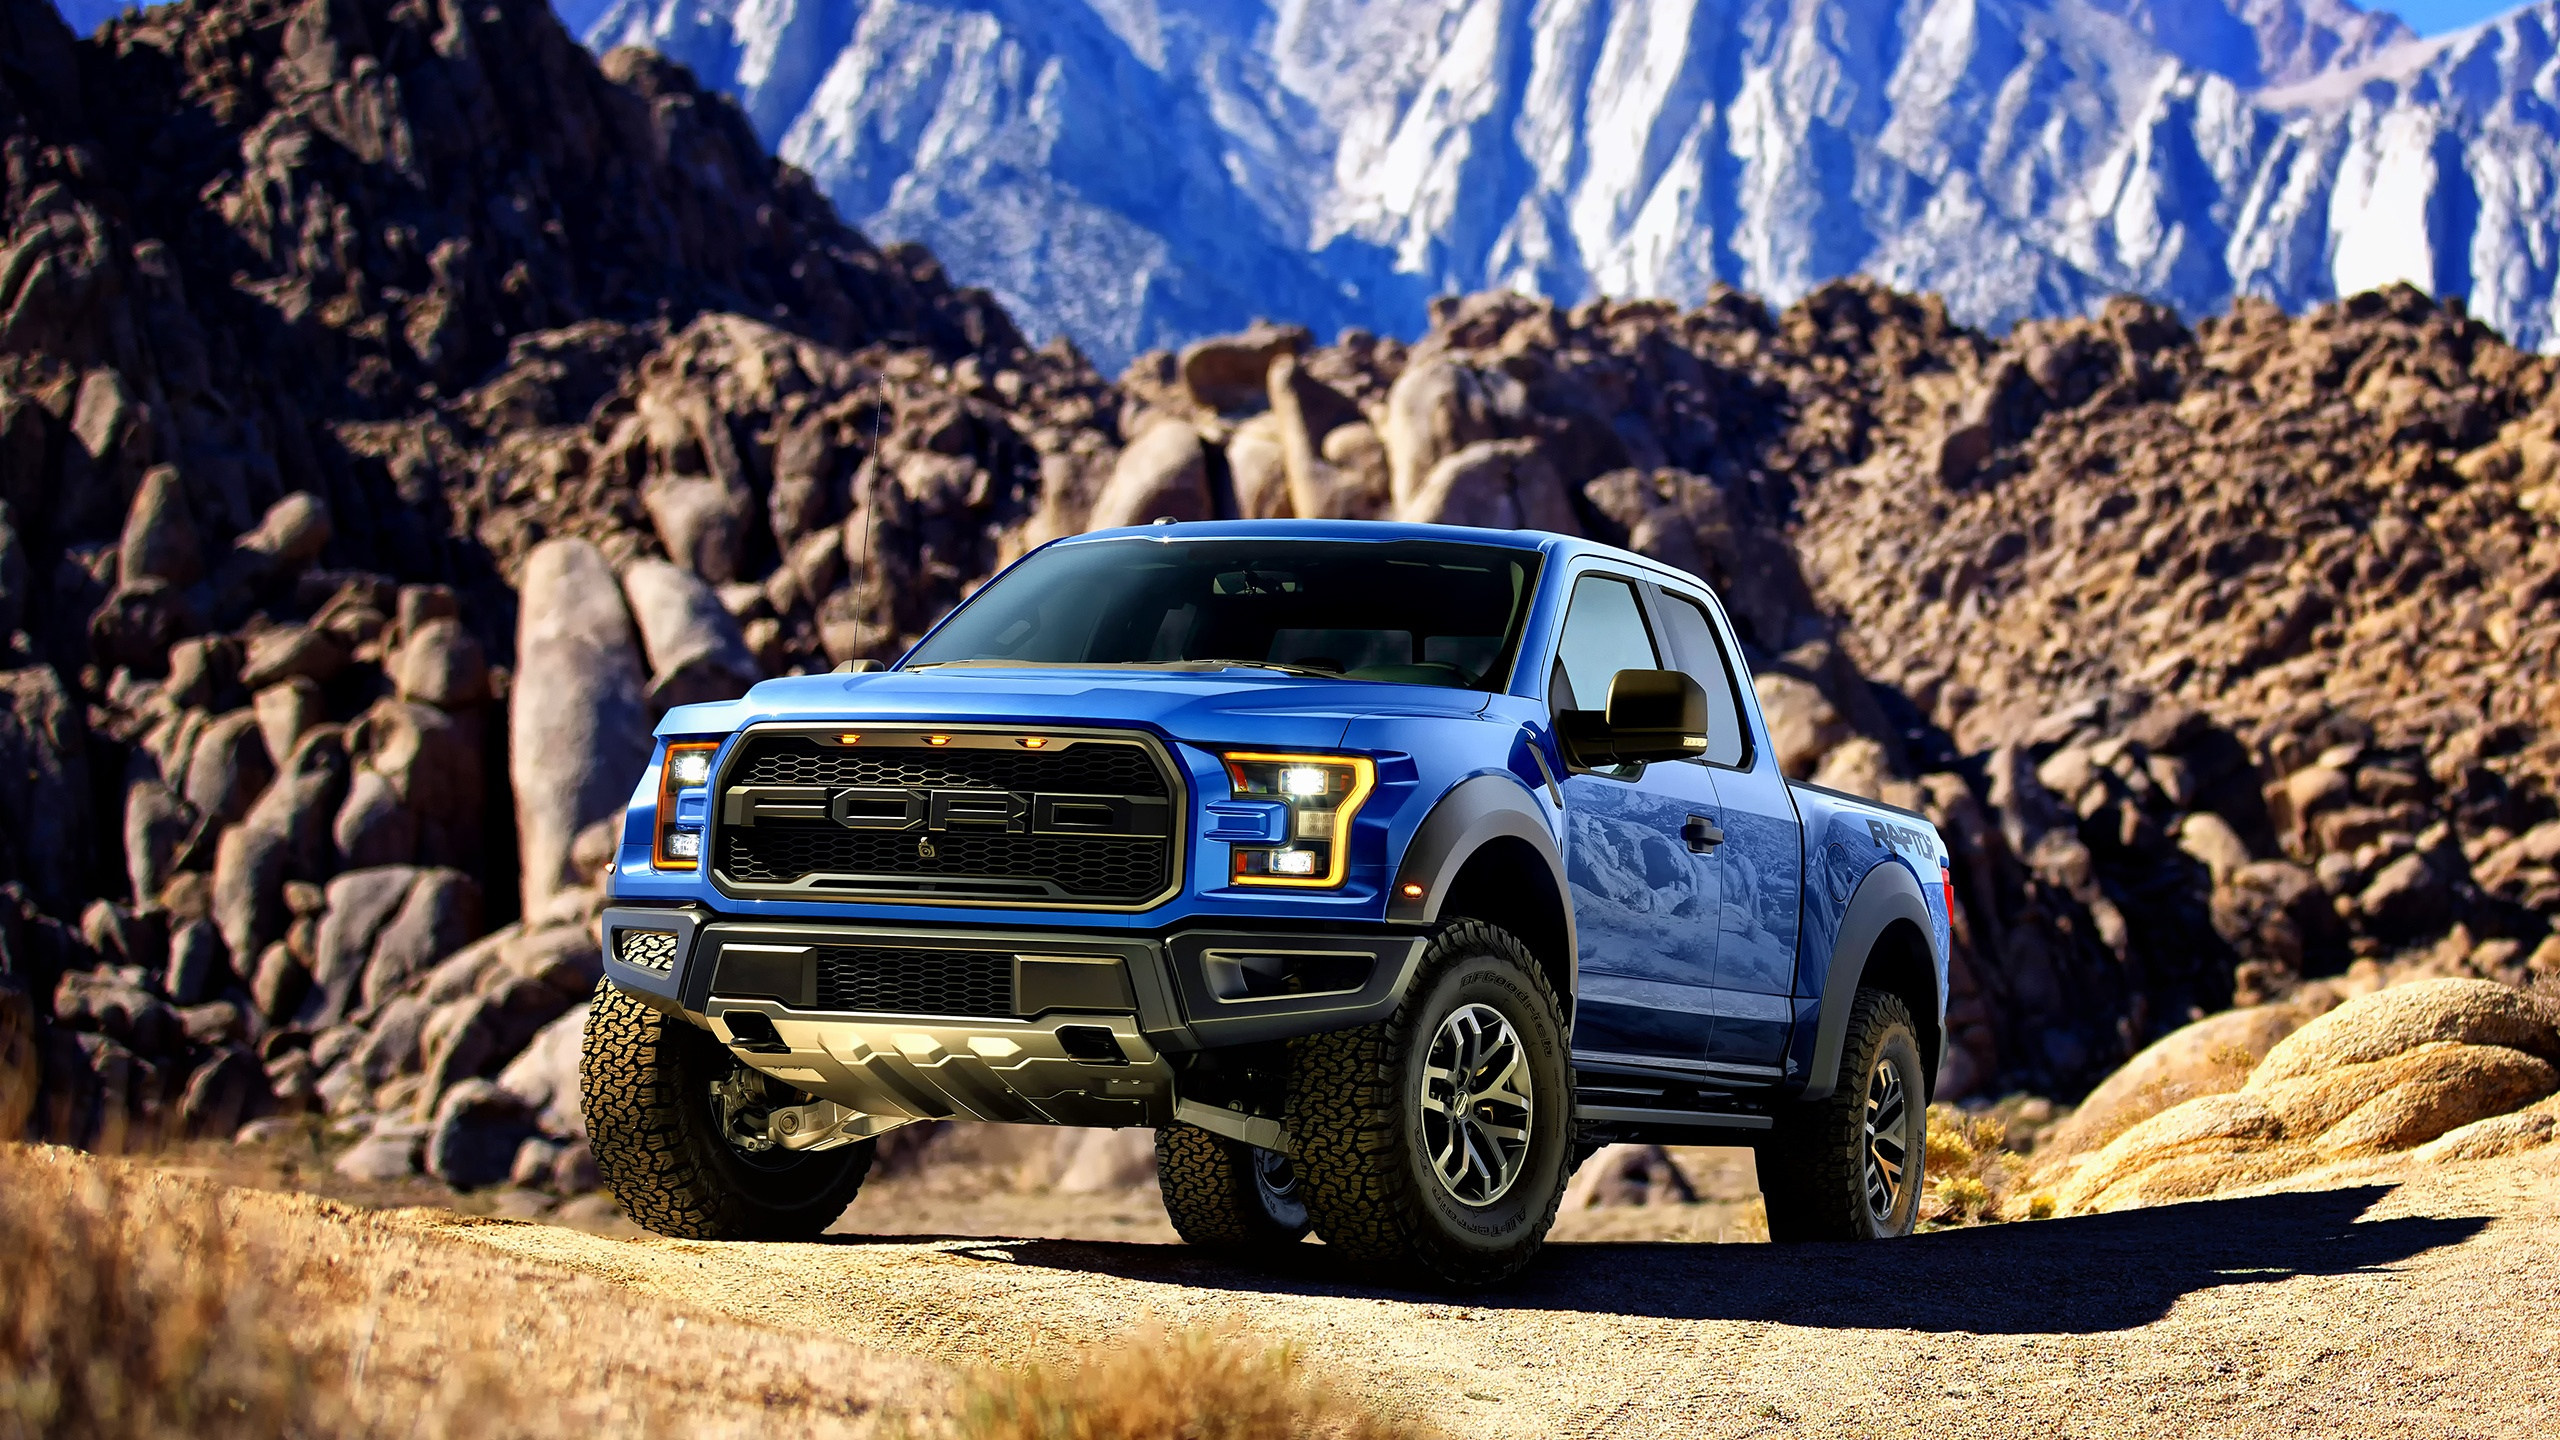 2016 Ford F 150 Raptor Wallpapers HD Wallpapers 2560x1440